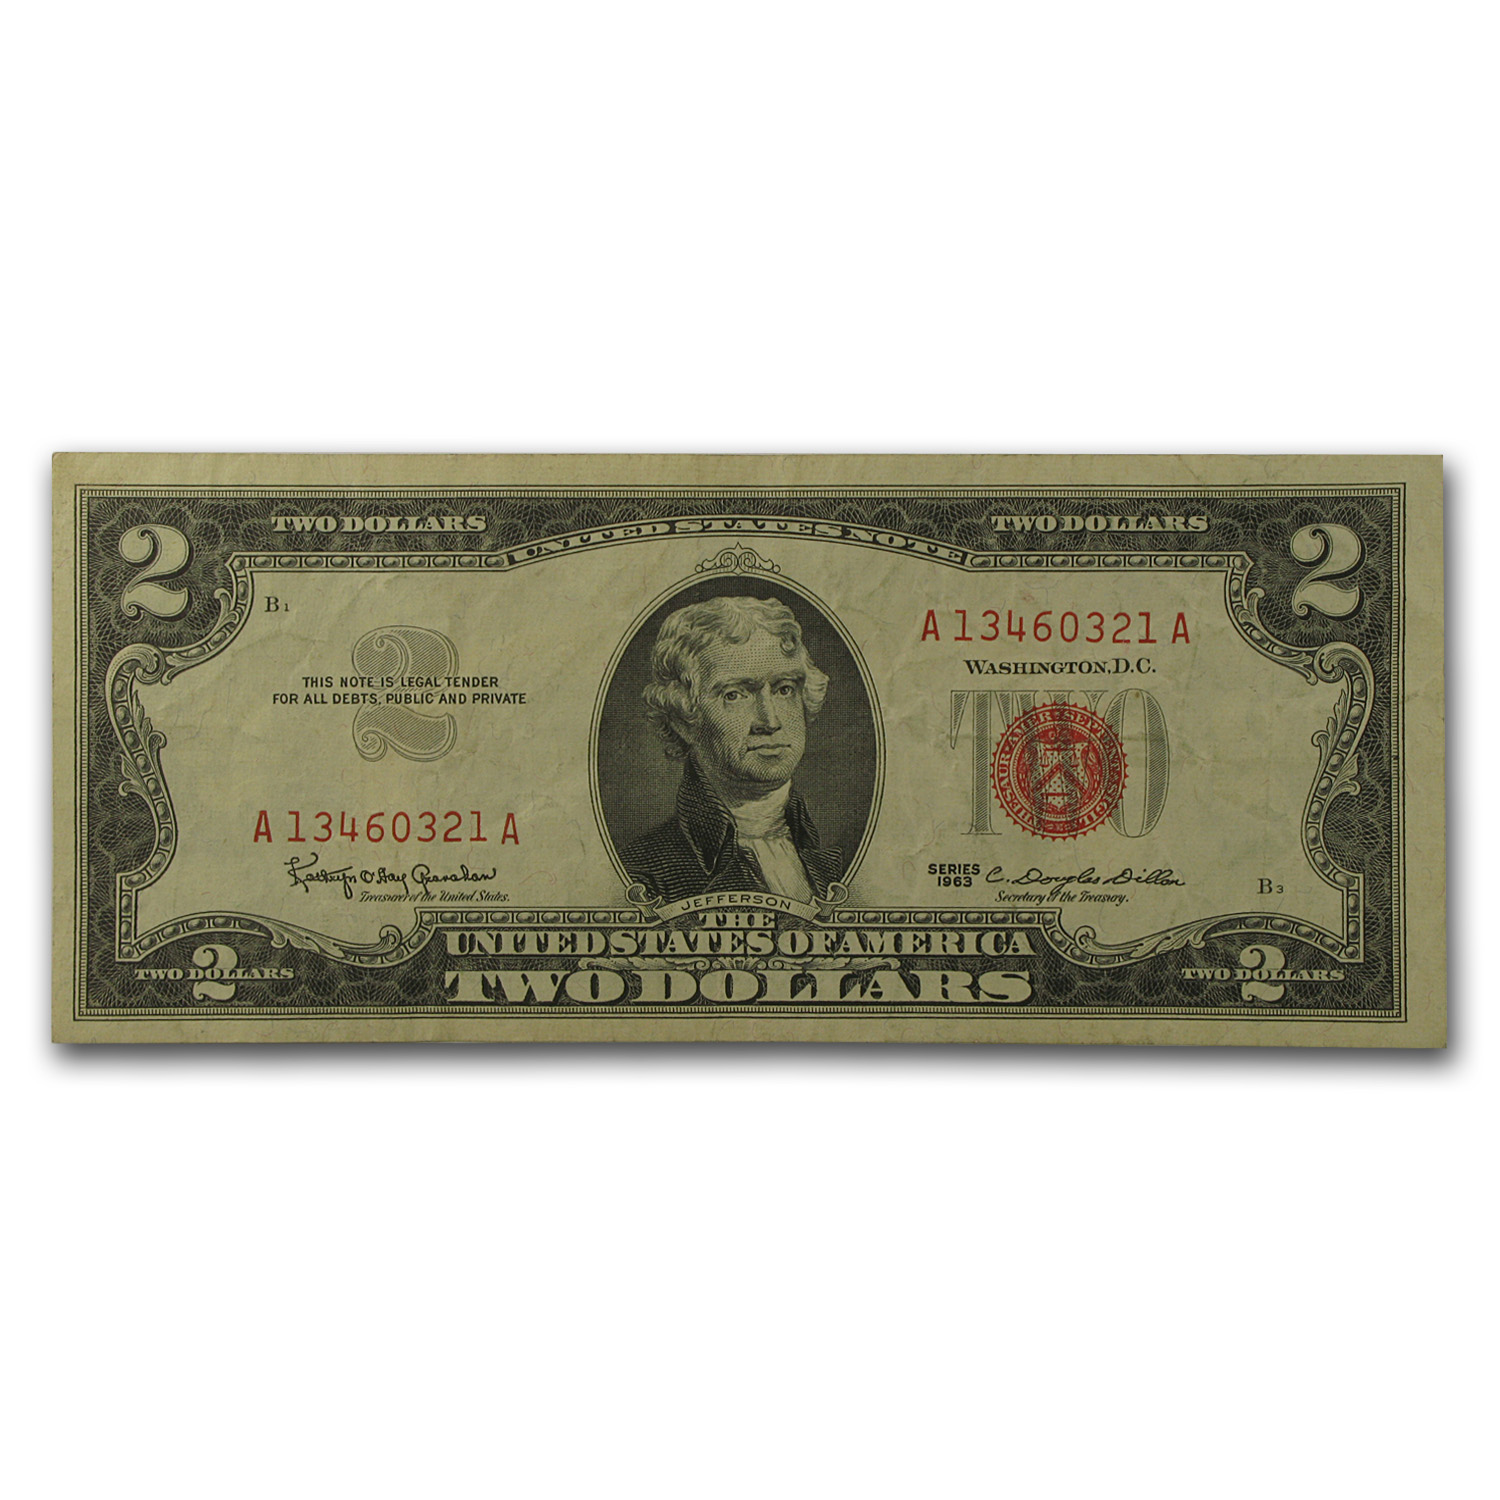 1963-1963-A $2 USNs (Red Seals) Very Good - Very Fine